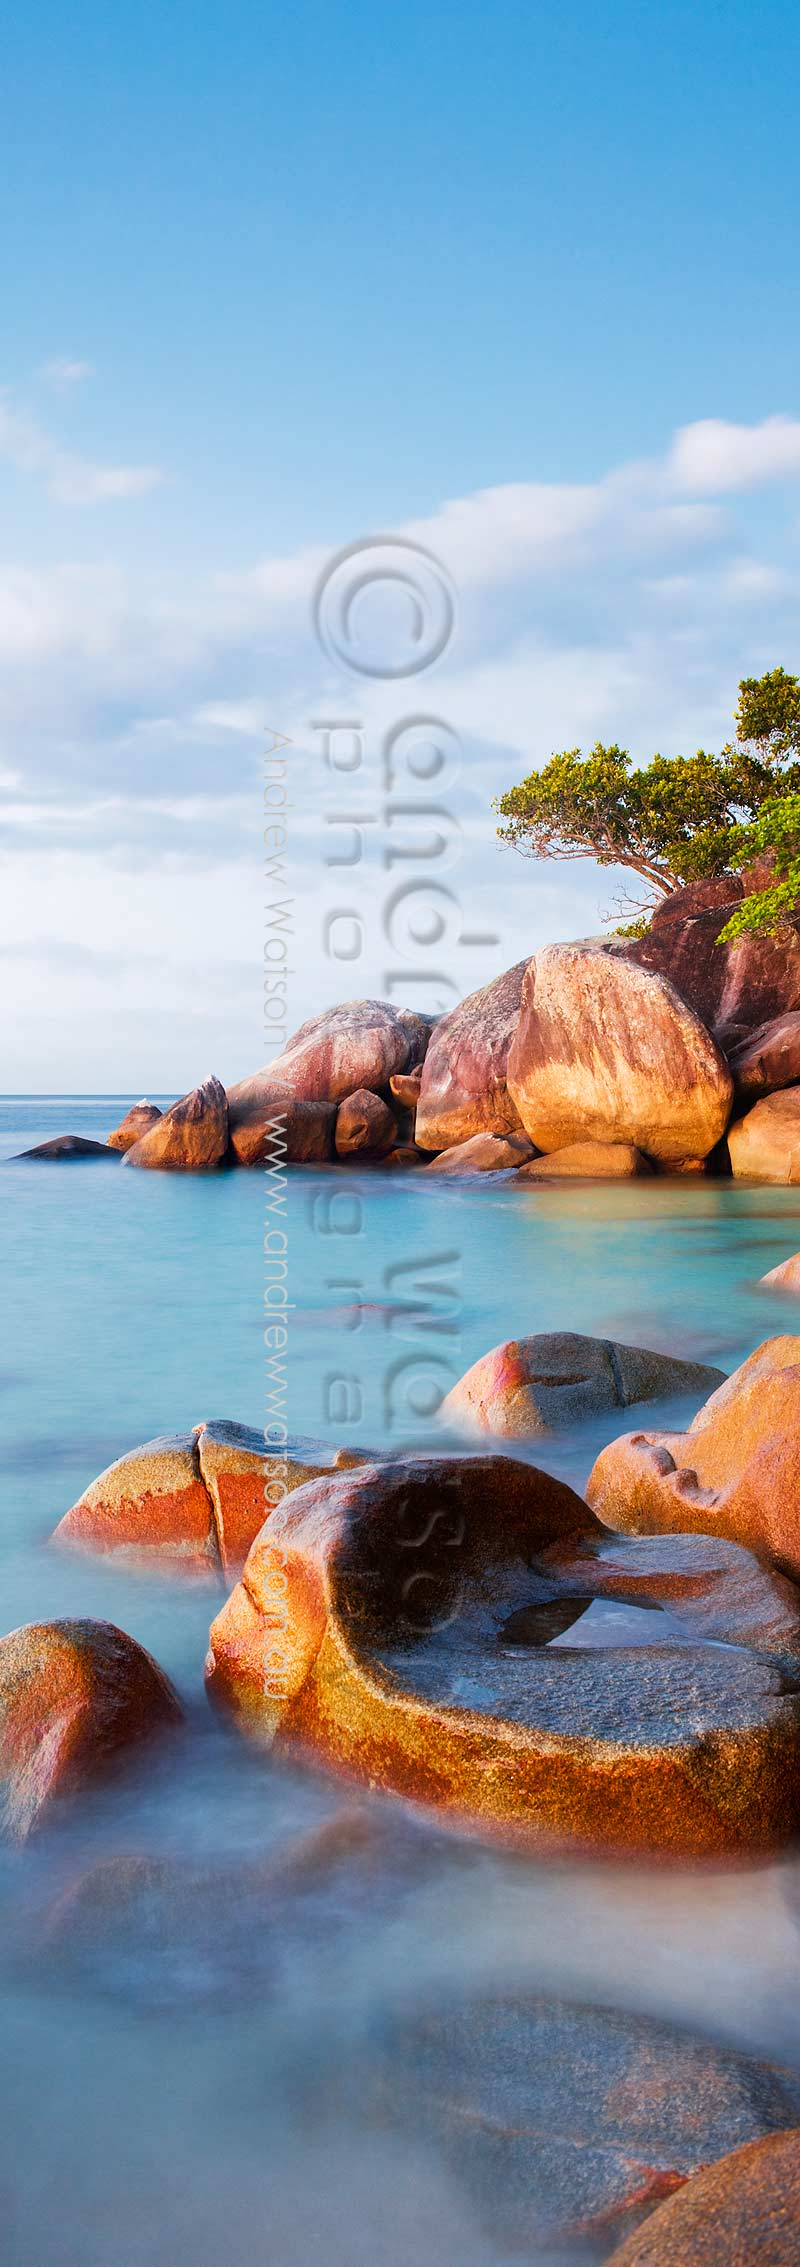 Twilight scene at Nudey BeachFitzroy Island, Cairns, North QueenslandImage available for licensing or as a fine-art print... please enquire